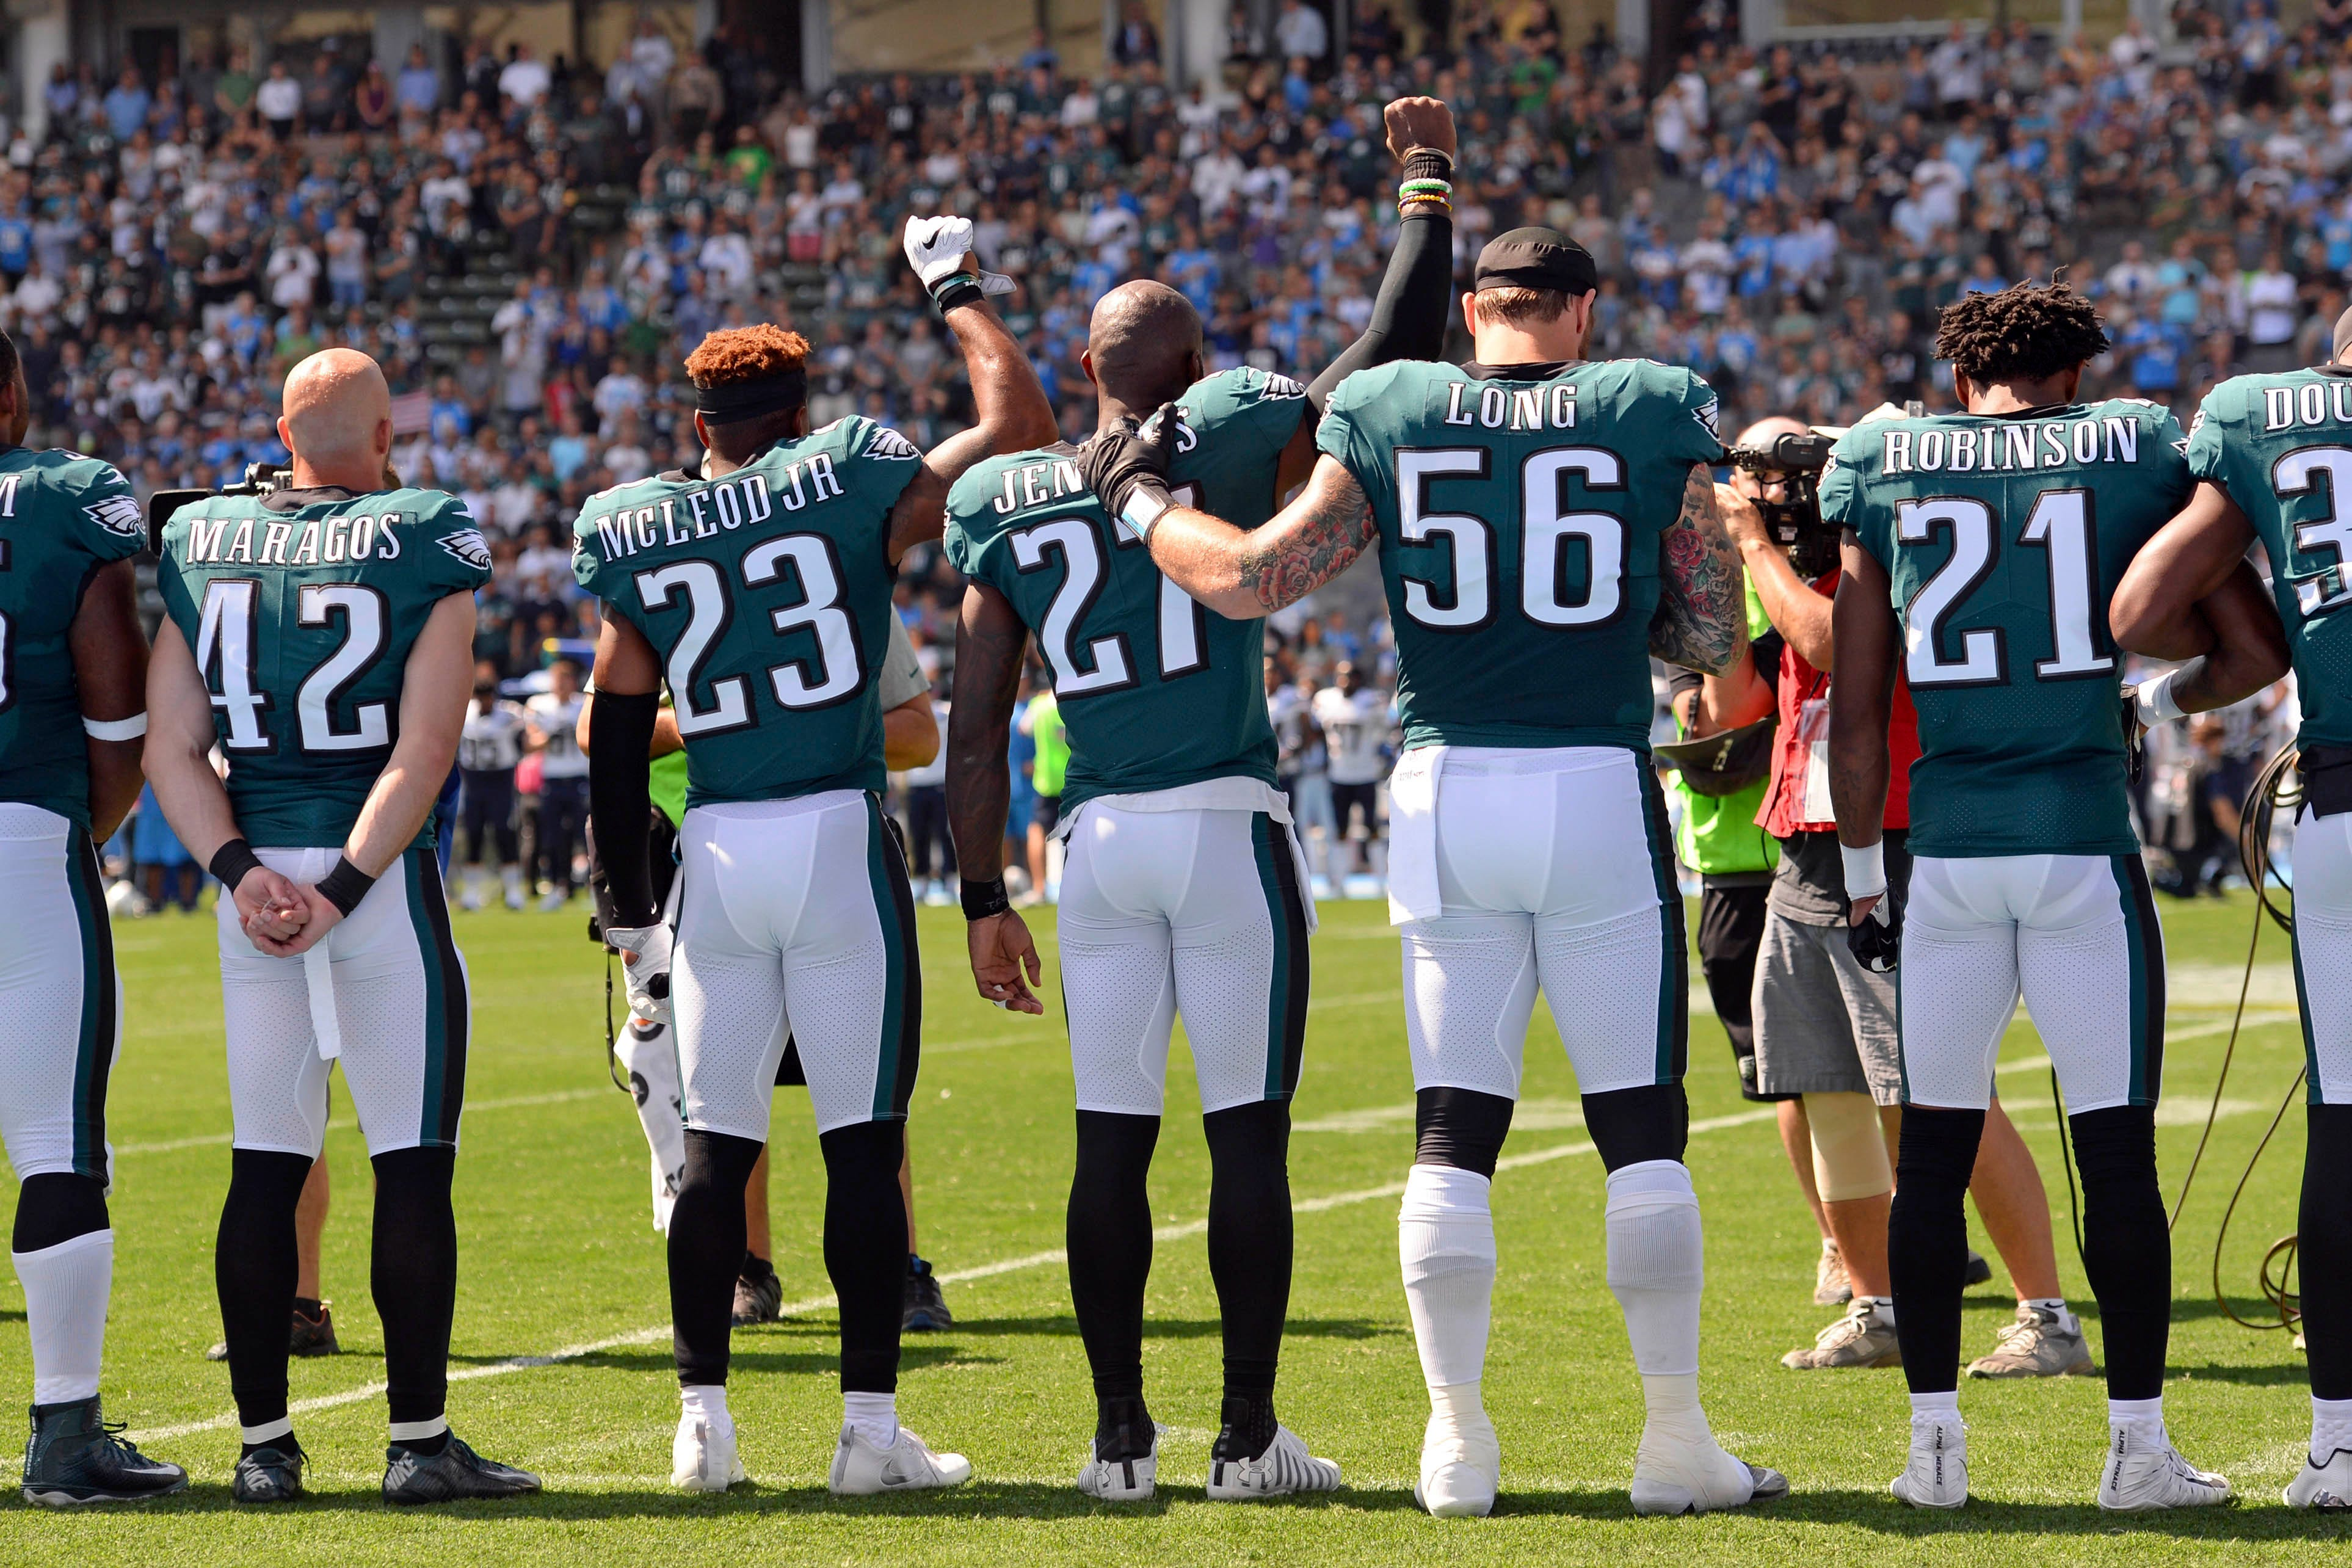 Eagles stars Malcolm Jenkins, Chris Long making even larger impacts off football field